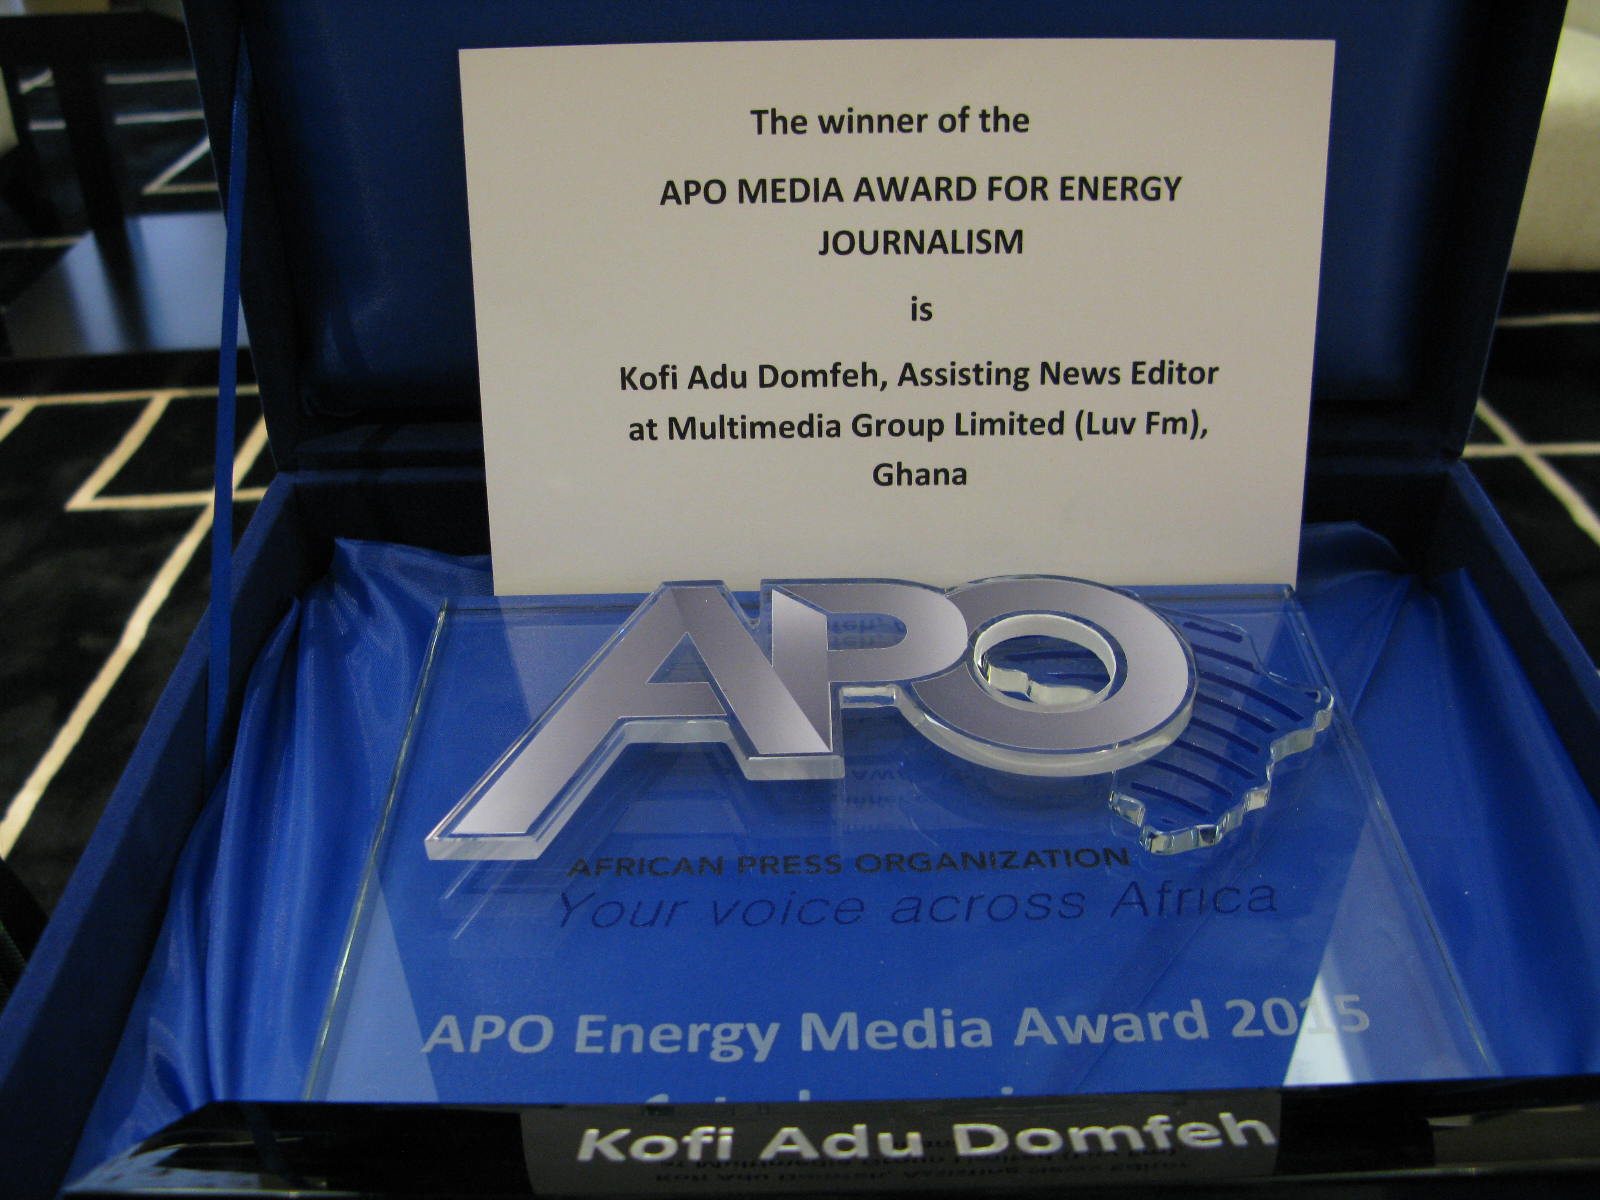 APO Energy Media Award 2015